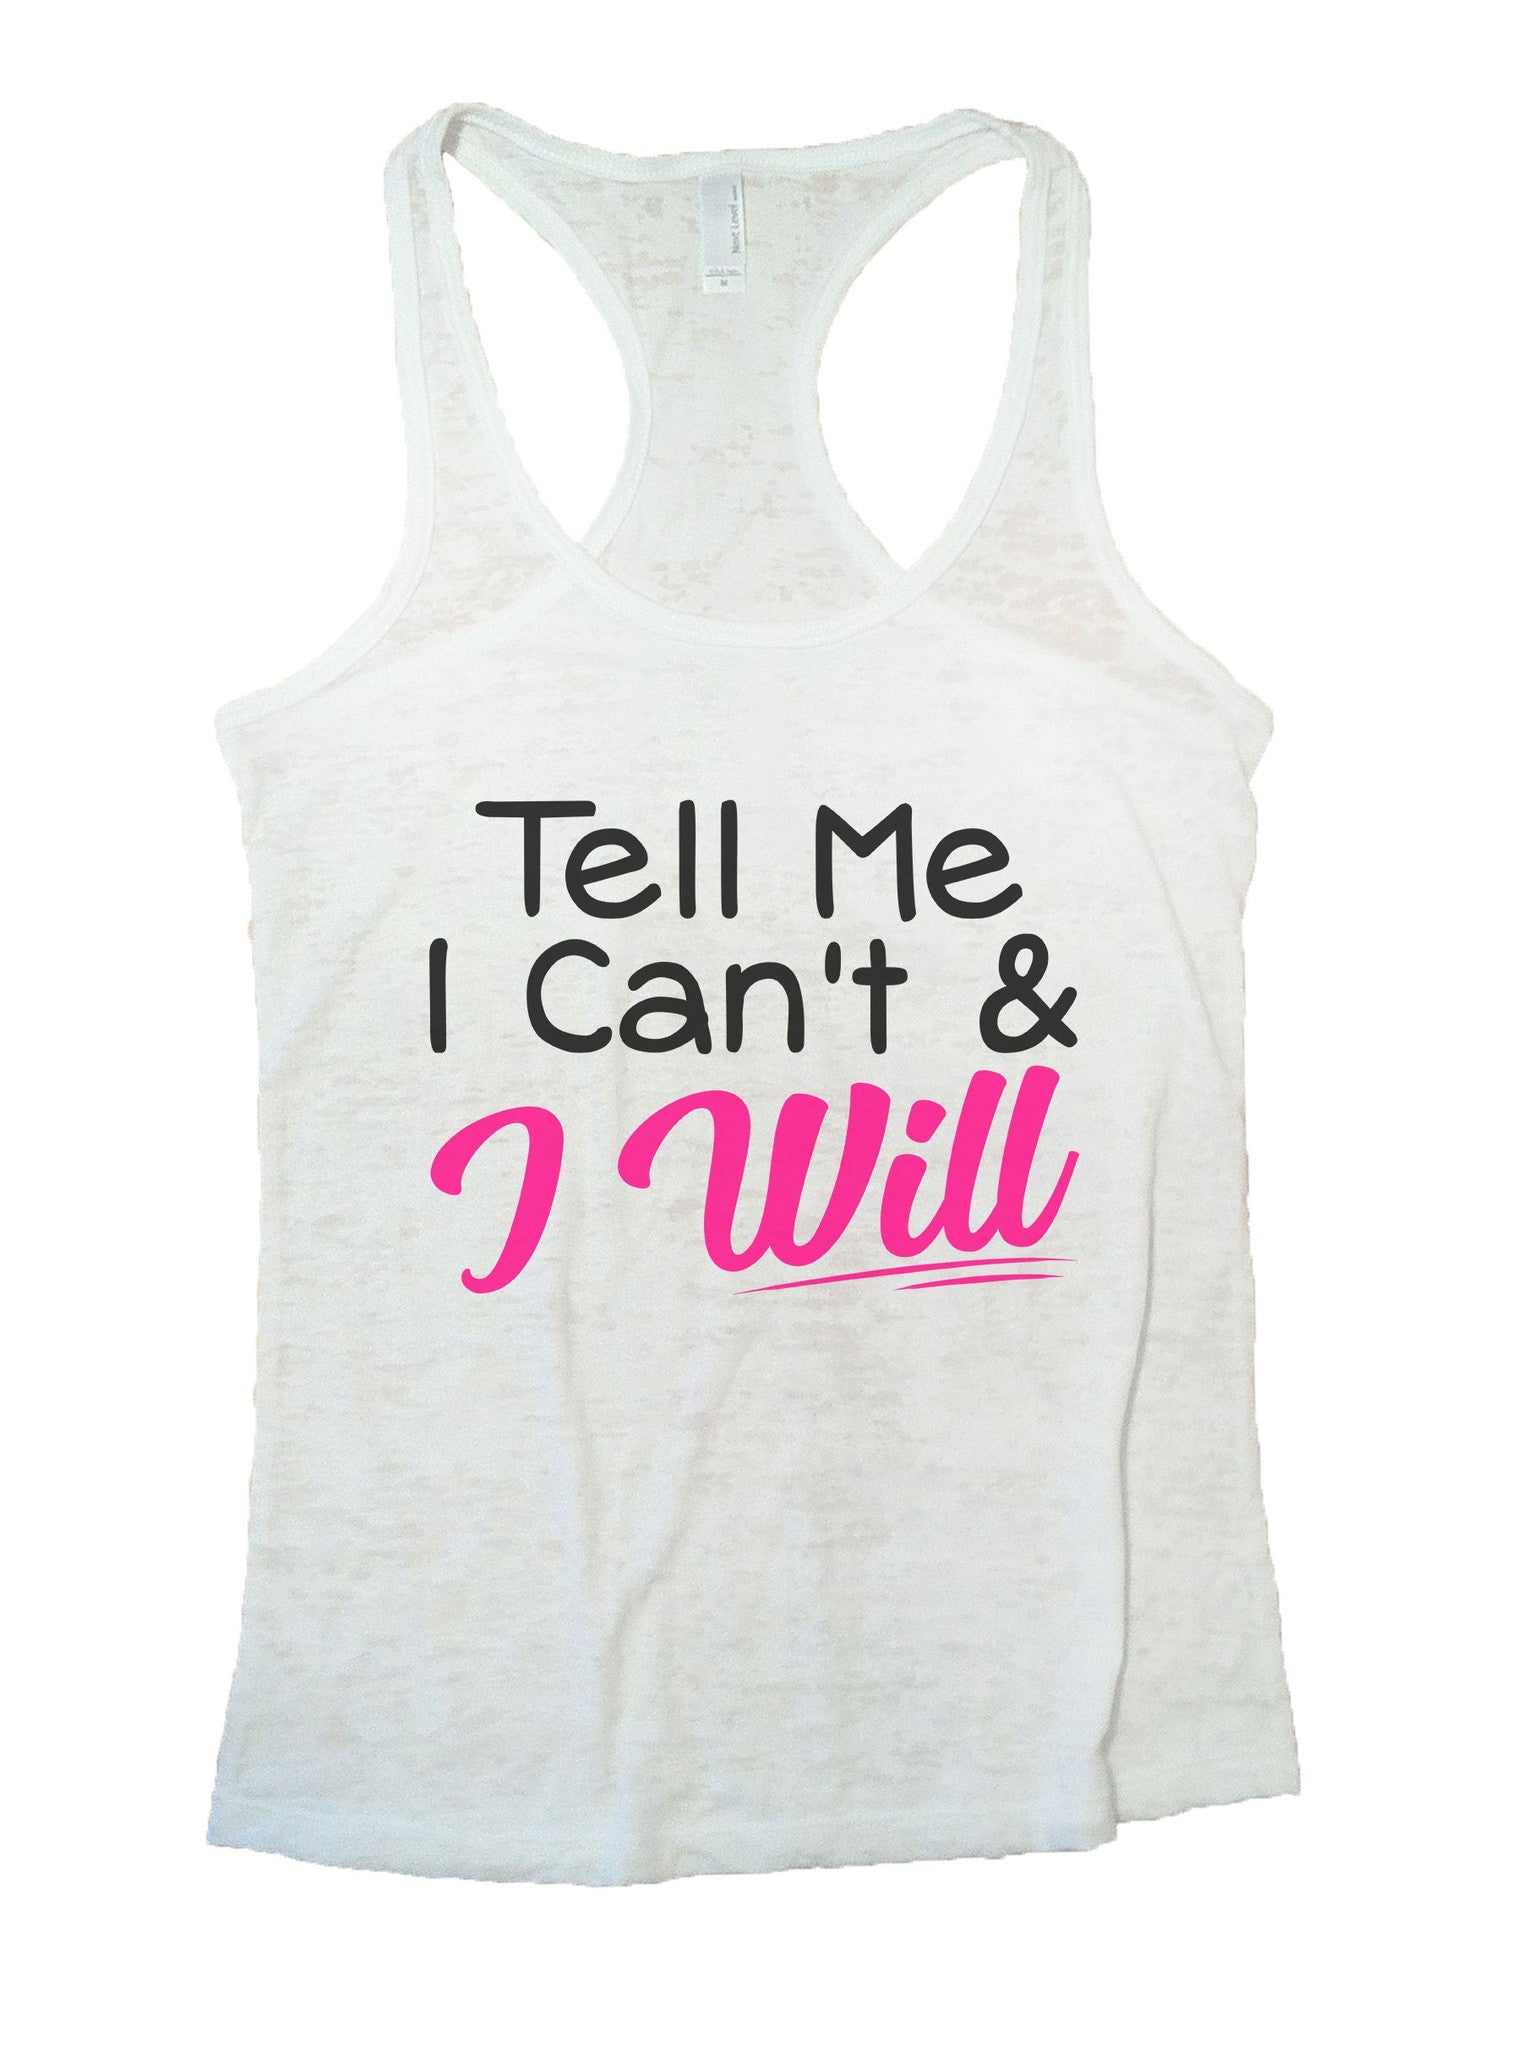 Tell Me I Can't & I Will Burnout Tank Top By BurnoutTankTops.com - 1071 - Funny Shirts Tank Tops Burnouts and Triblends  - 6